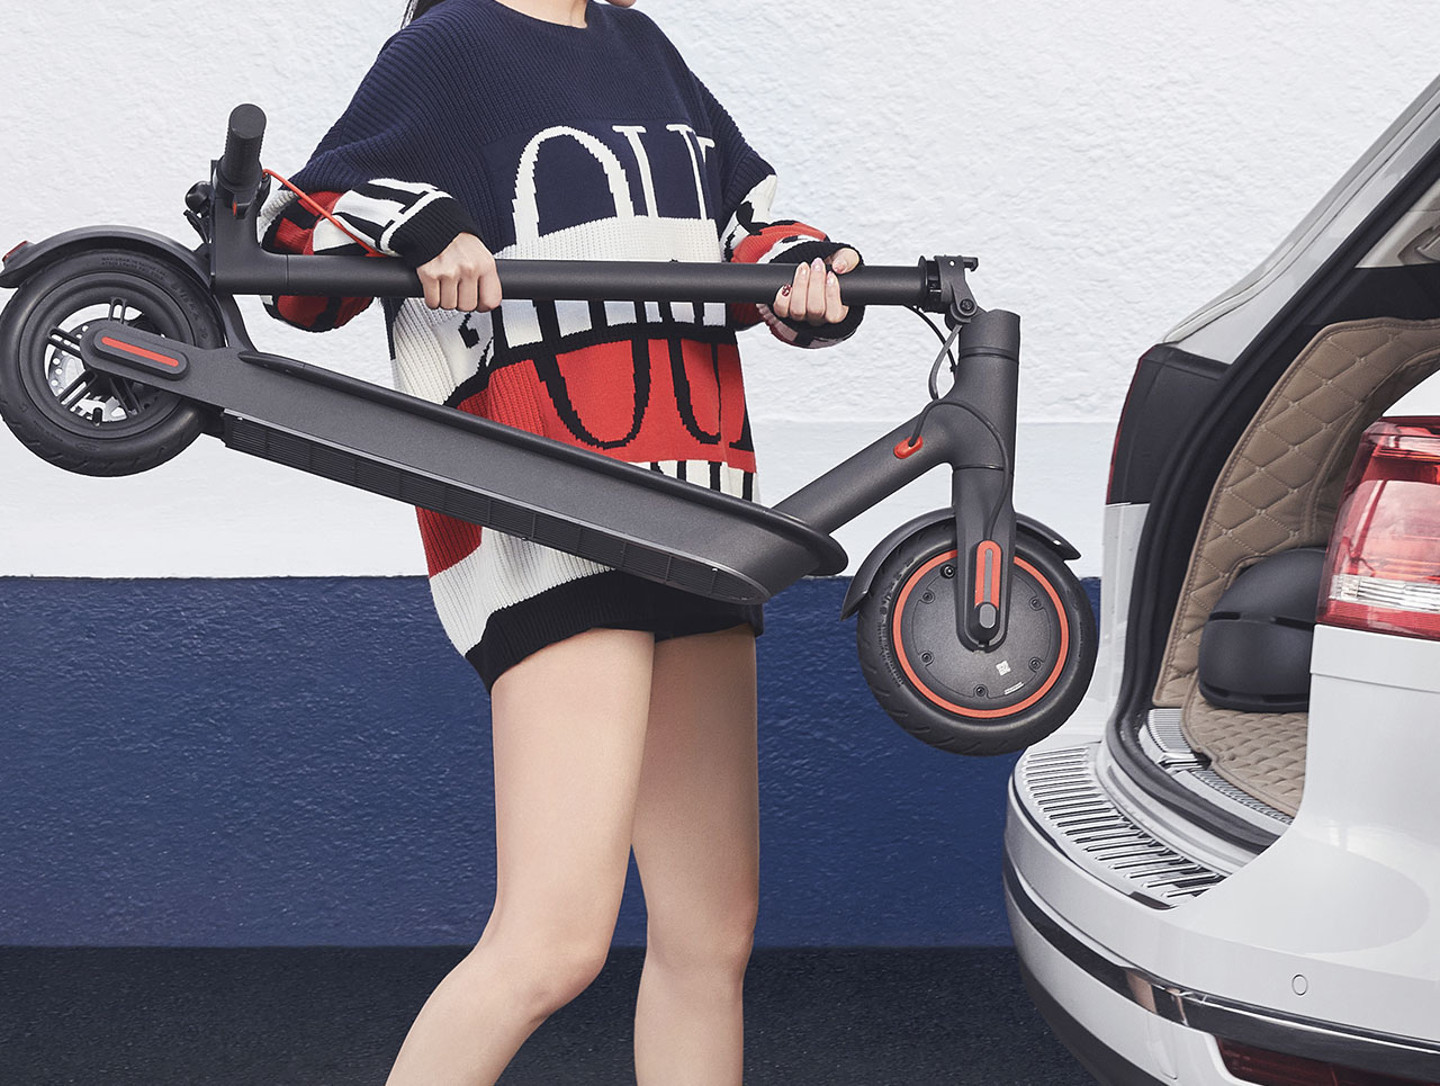 Electricscooter 9